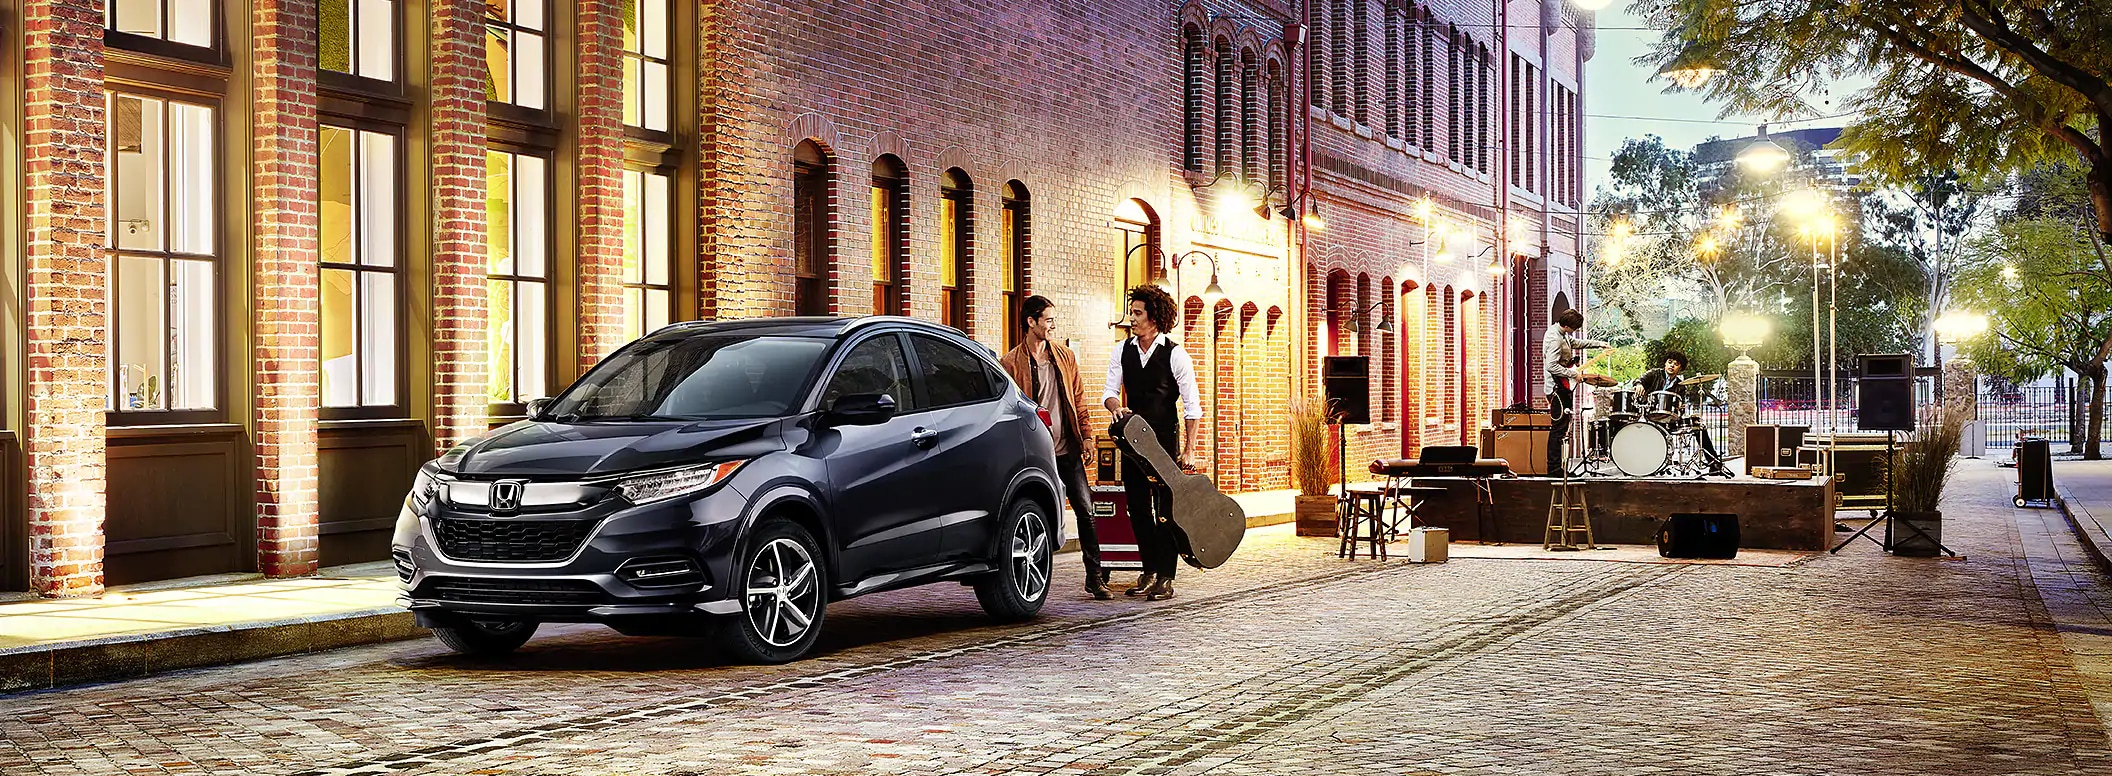 2019 HR-V on brick road with musicians